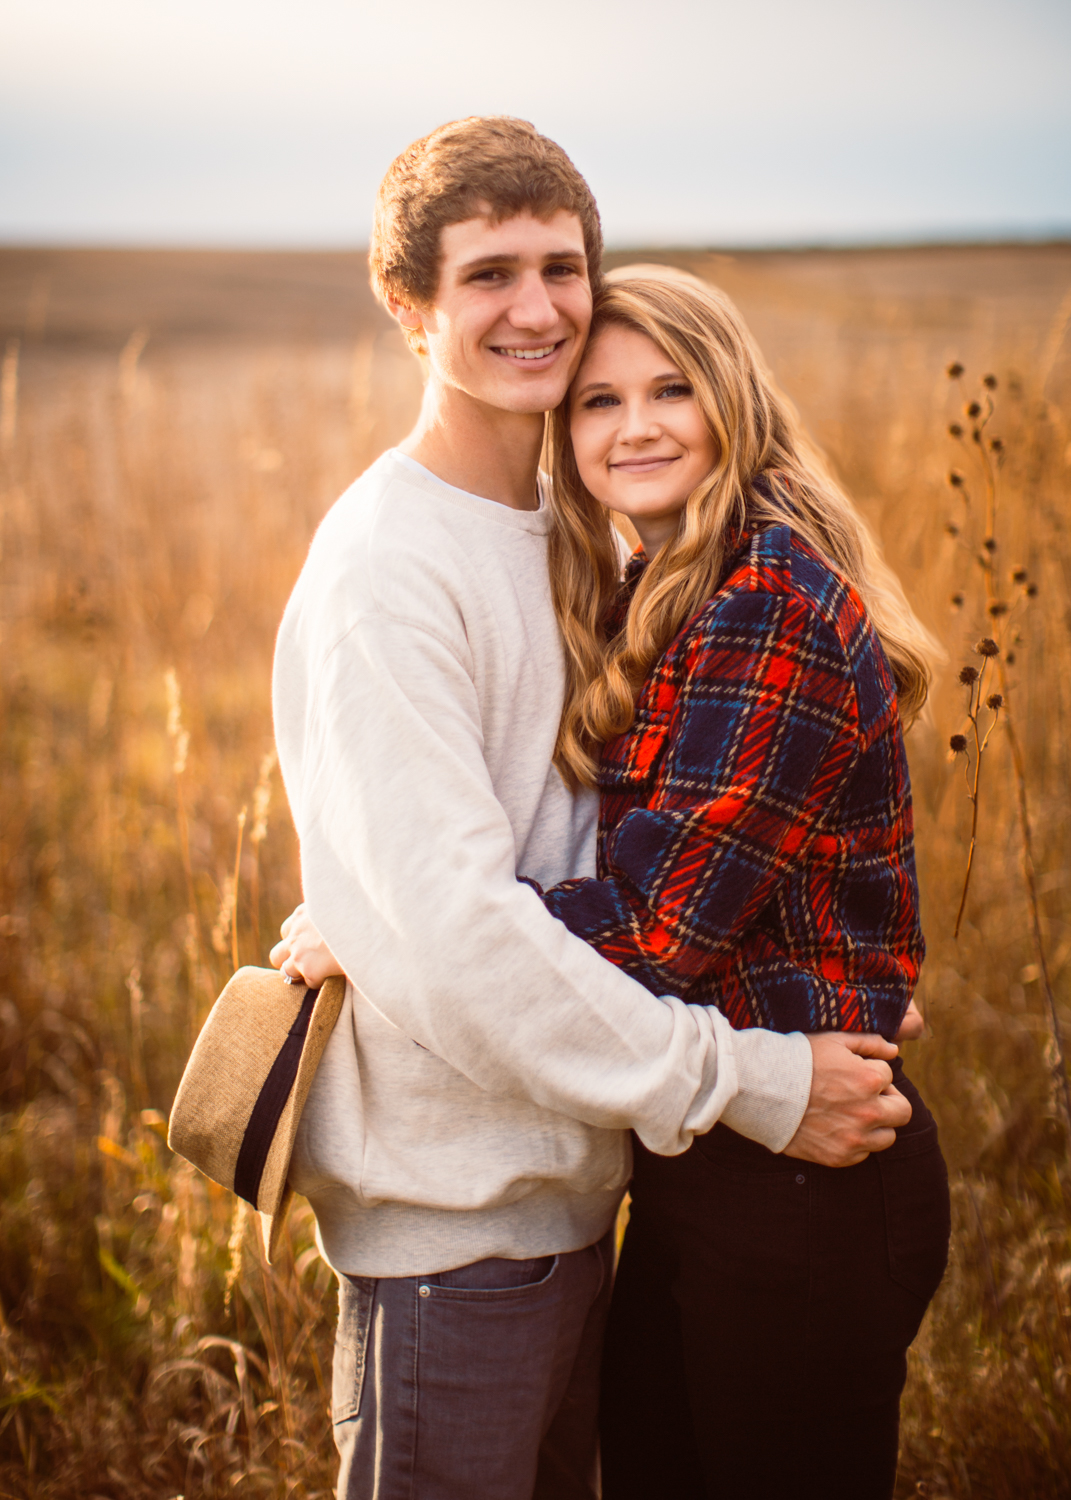 Affordable-Engagement-Photography-Fort-Collins-Colorado_004.jpg